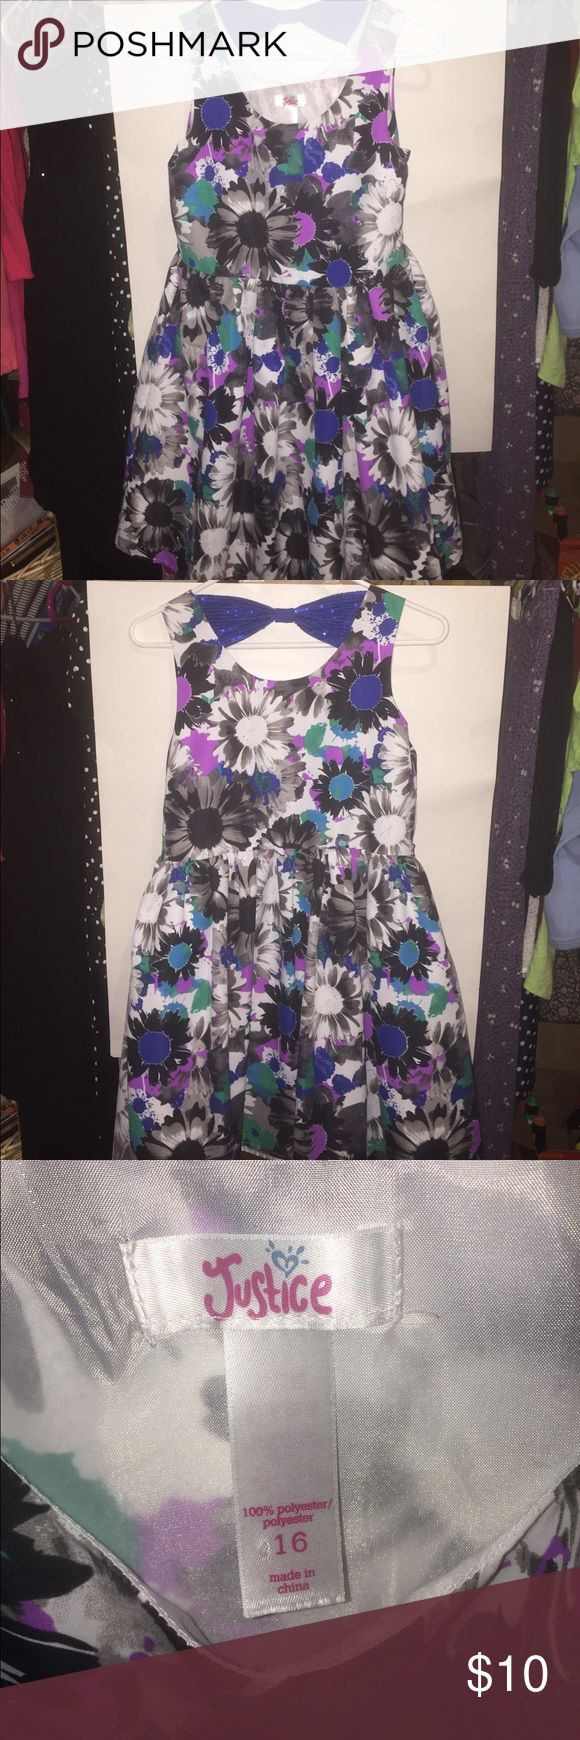 Justice Sleeveless Dress Size 16 Bold purple, blue, pink, black and white flowers perfect for a dance, church, or a sunny day. Knee length, with sequin bow behind the neck. Justice Dresses Casual